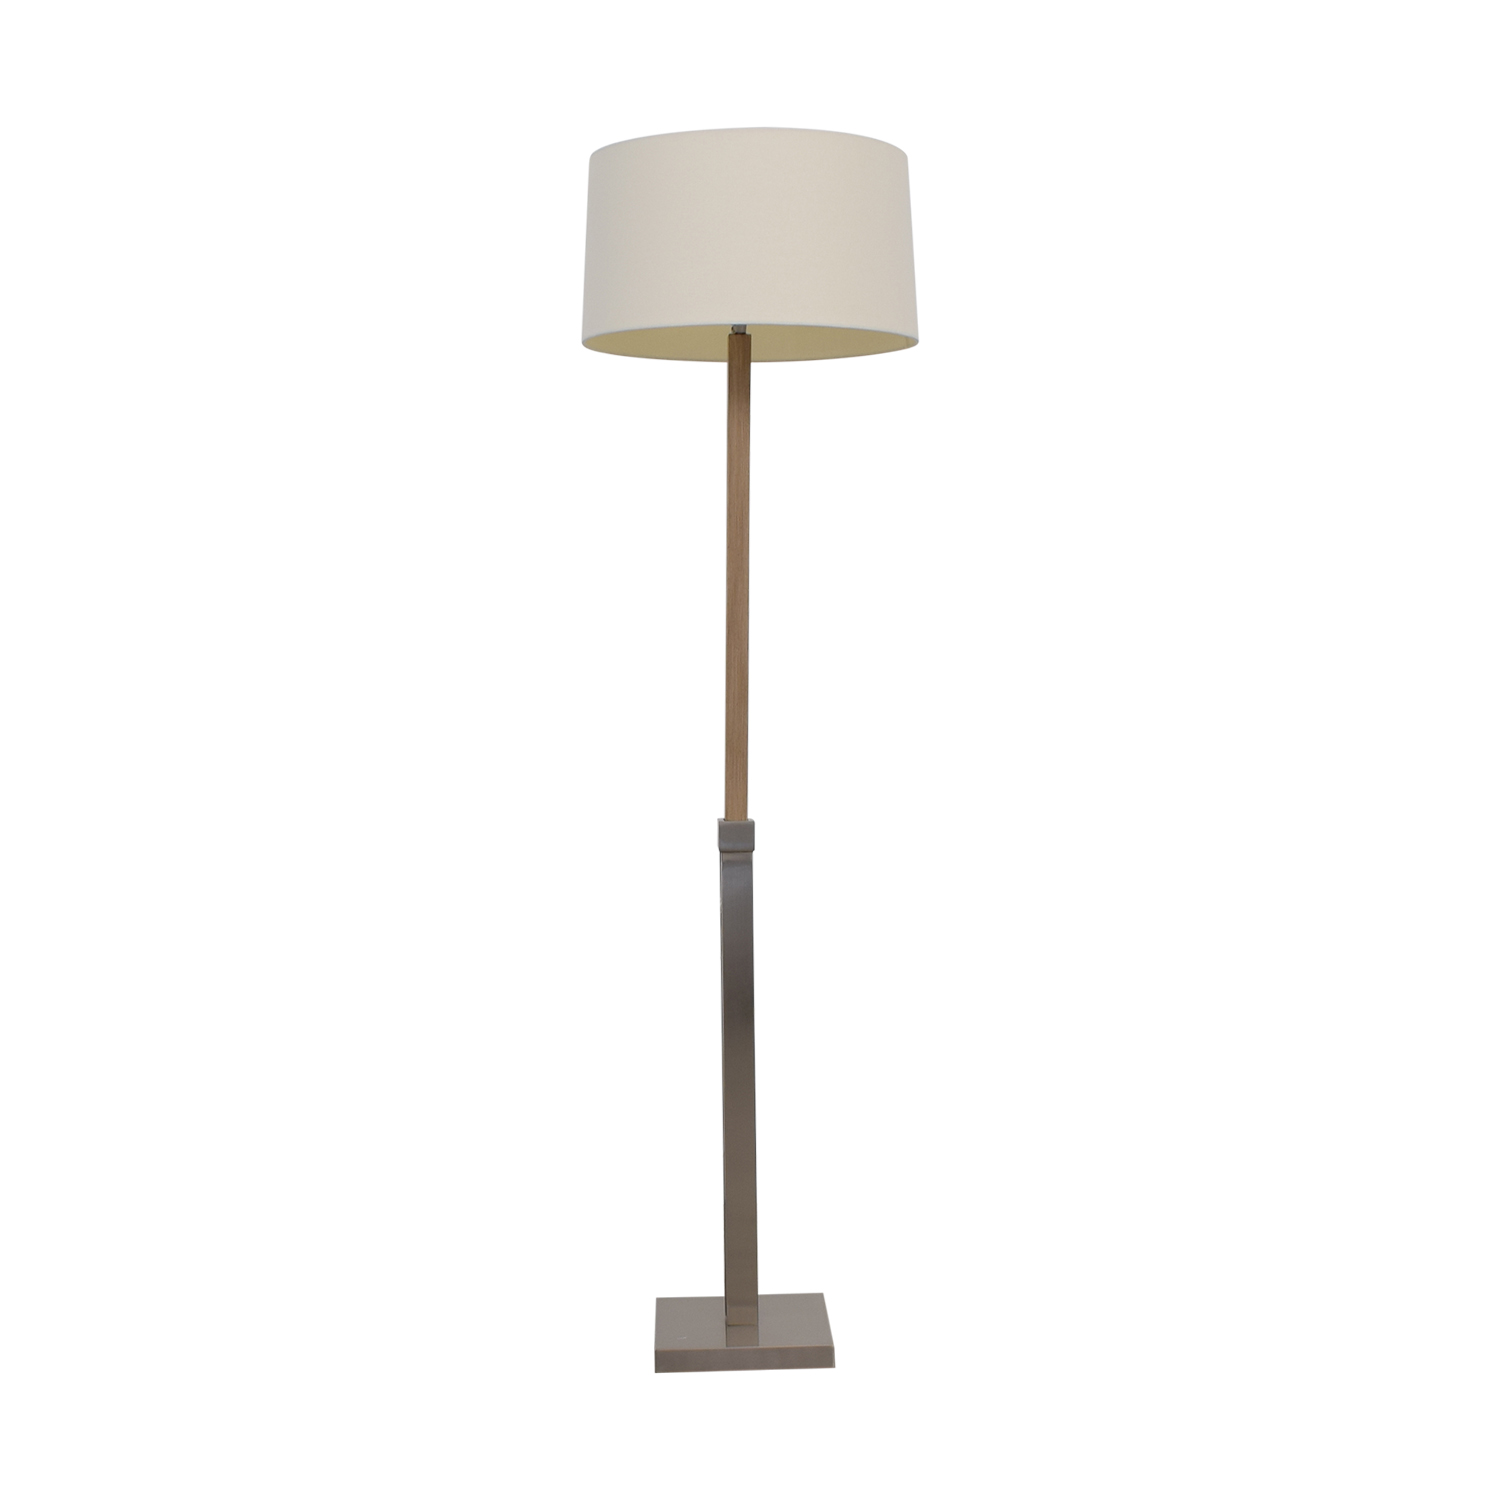 Crate & Barrel Chrome Floor Lamp Crate & Barrel